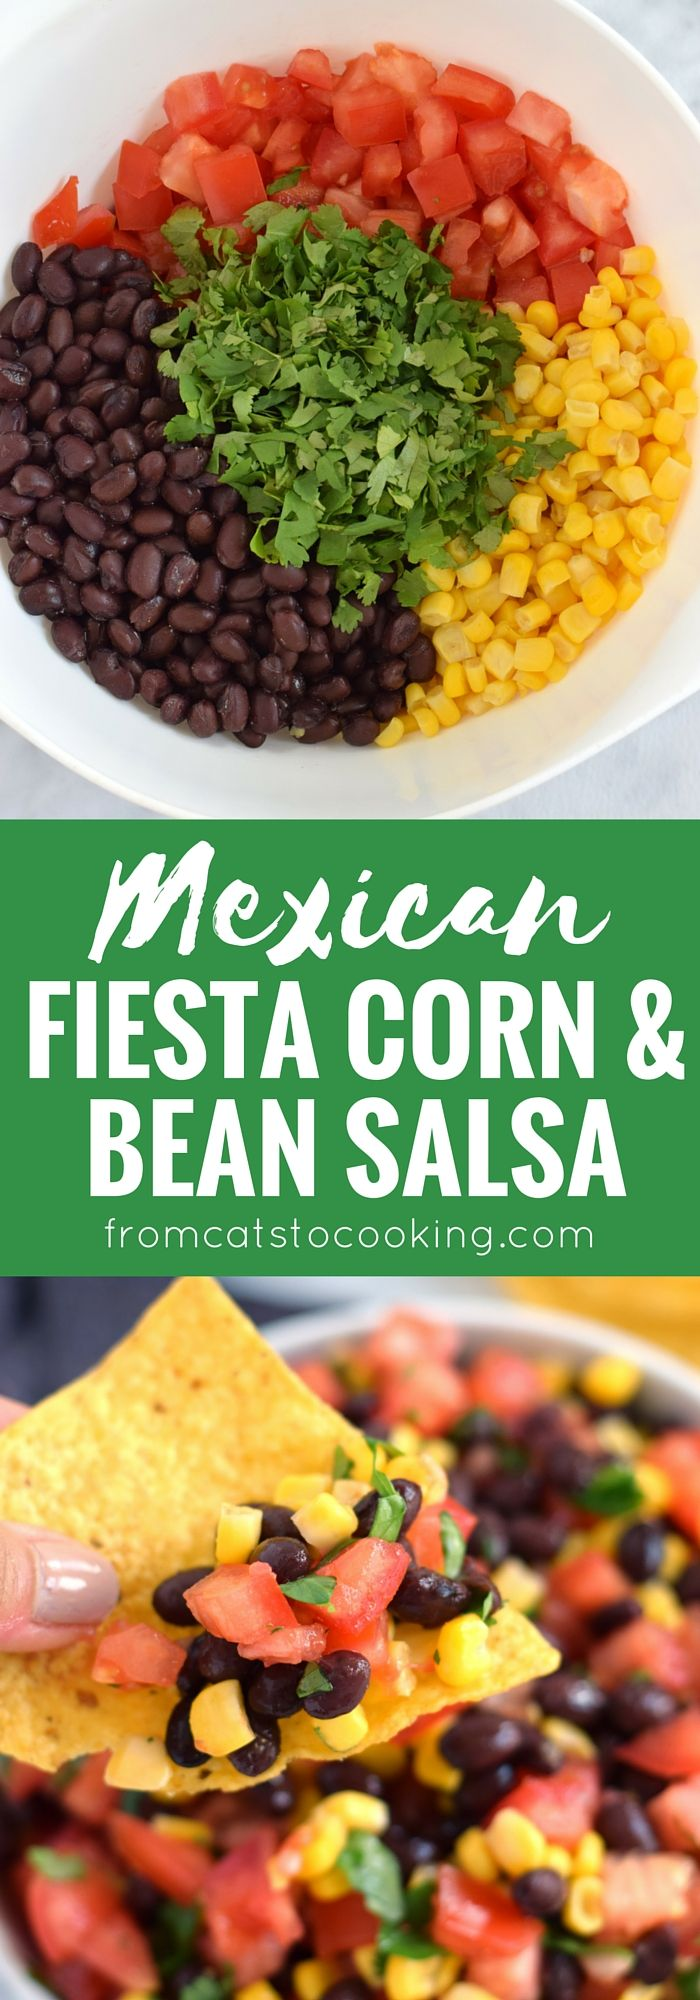 A super easy, bright and fresh Mexican Fiesta Corn & Bean Salsa recipe that takes only 10 minutes to make! Is gluten free, vegetarian, vegan and perfect for the spring and summer months. // isabeleats.com